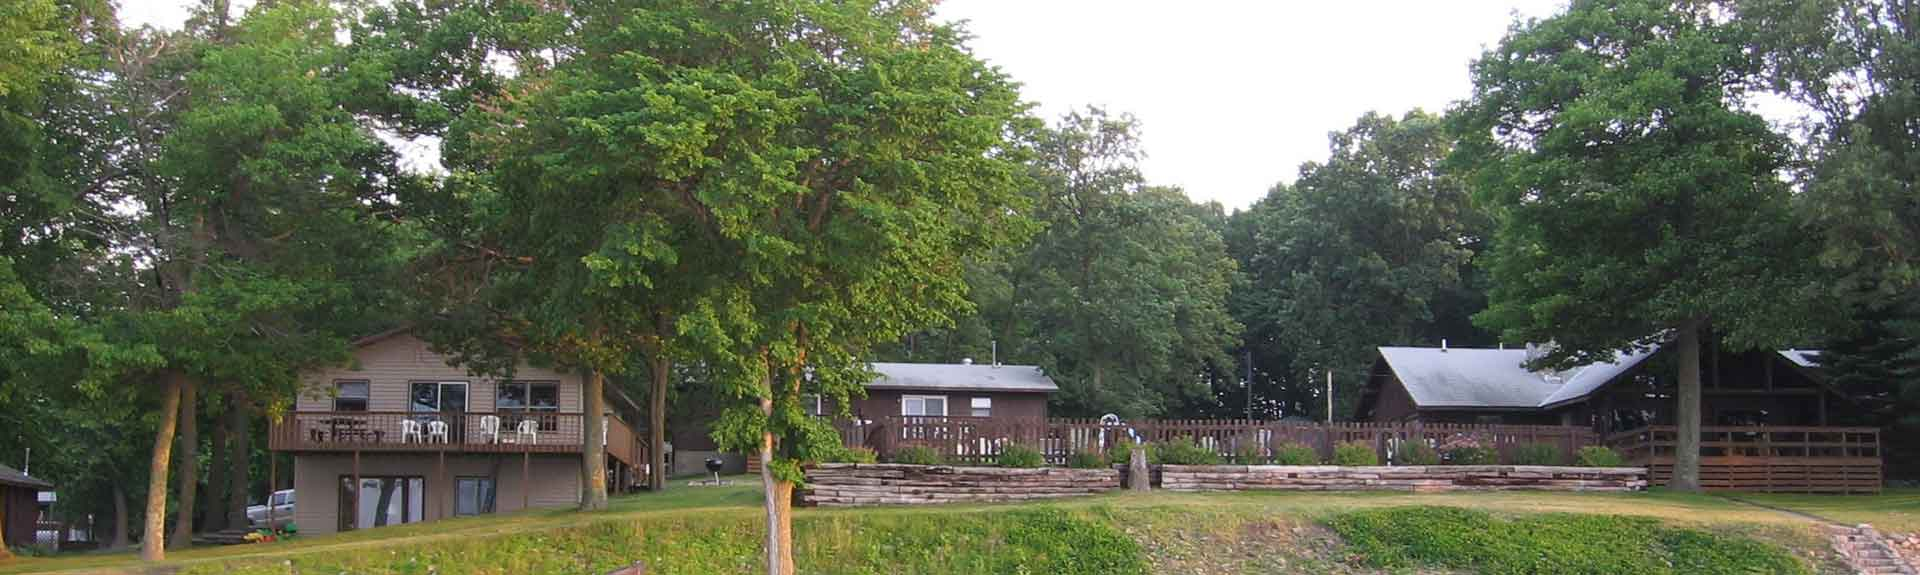 Adventure North Resort is conveniently located on the shores of Leech Lake.